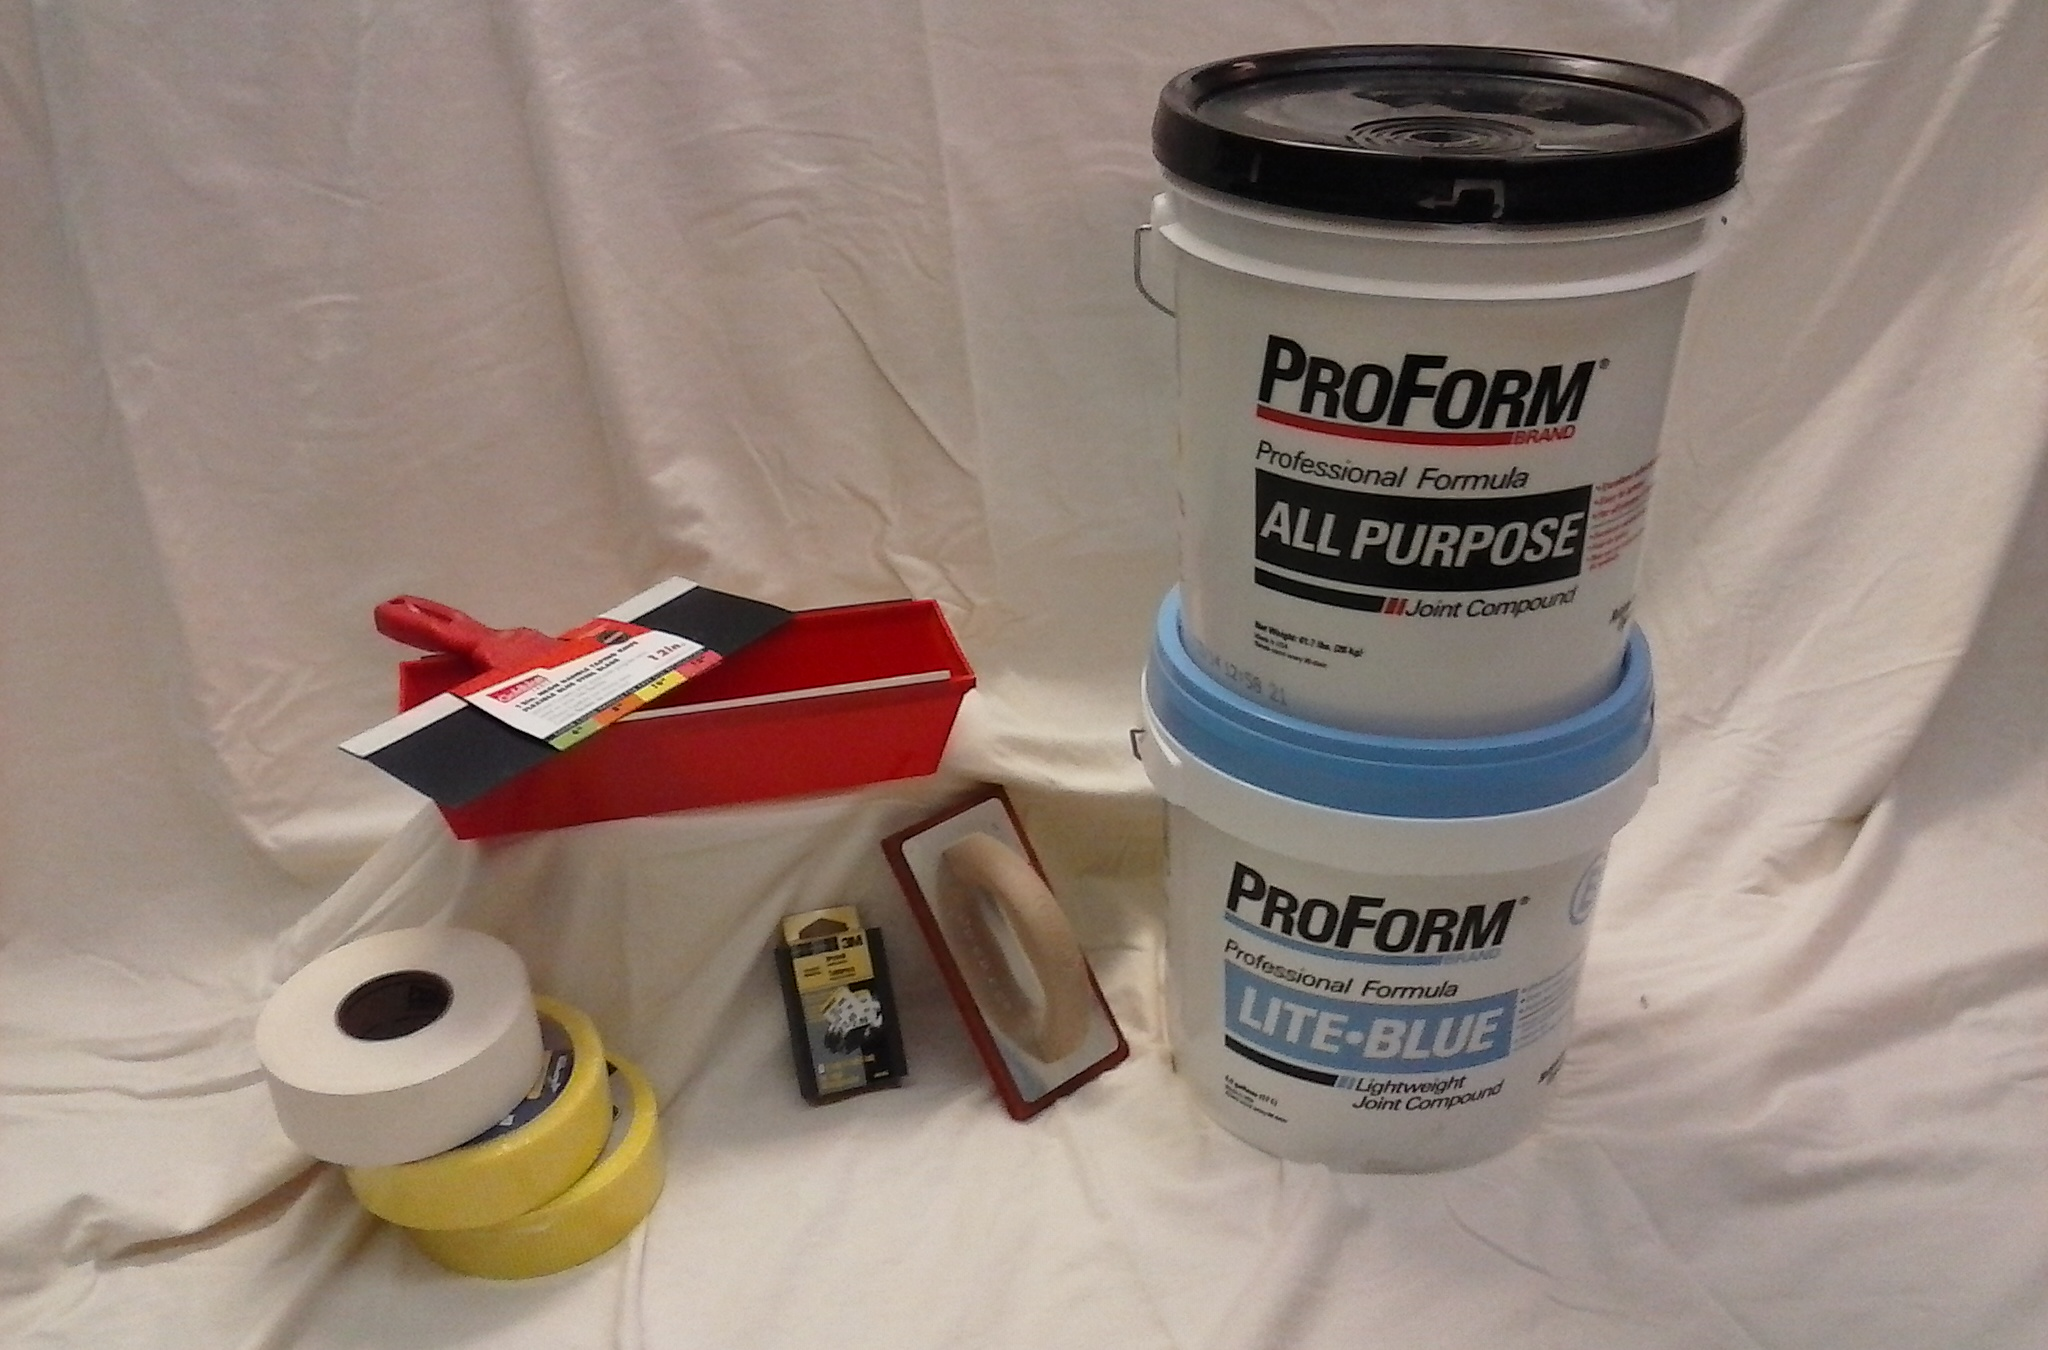 3 8 Drywall Drywall Simmons Building Materials